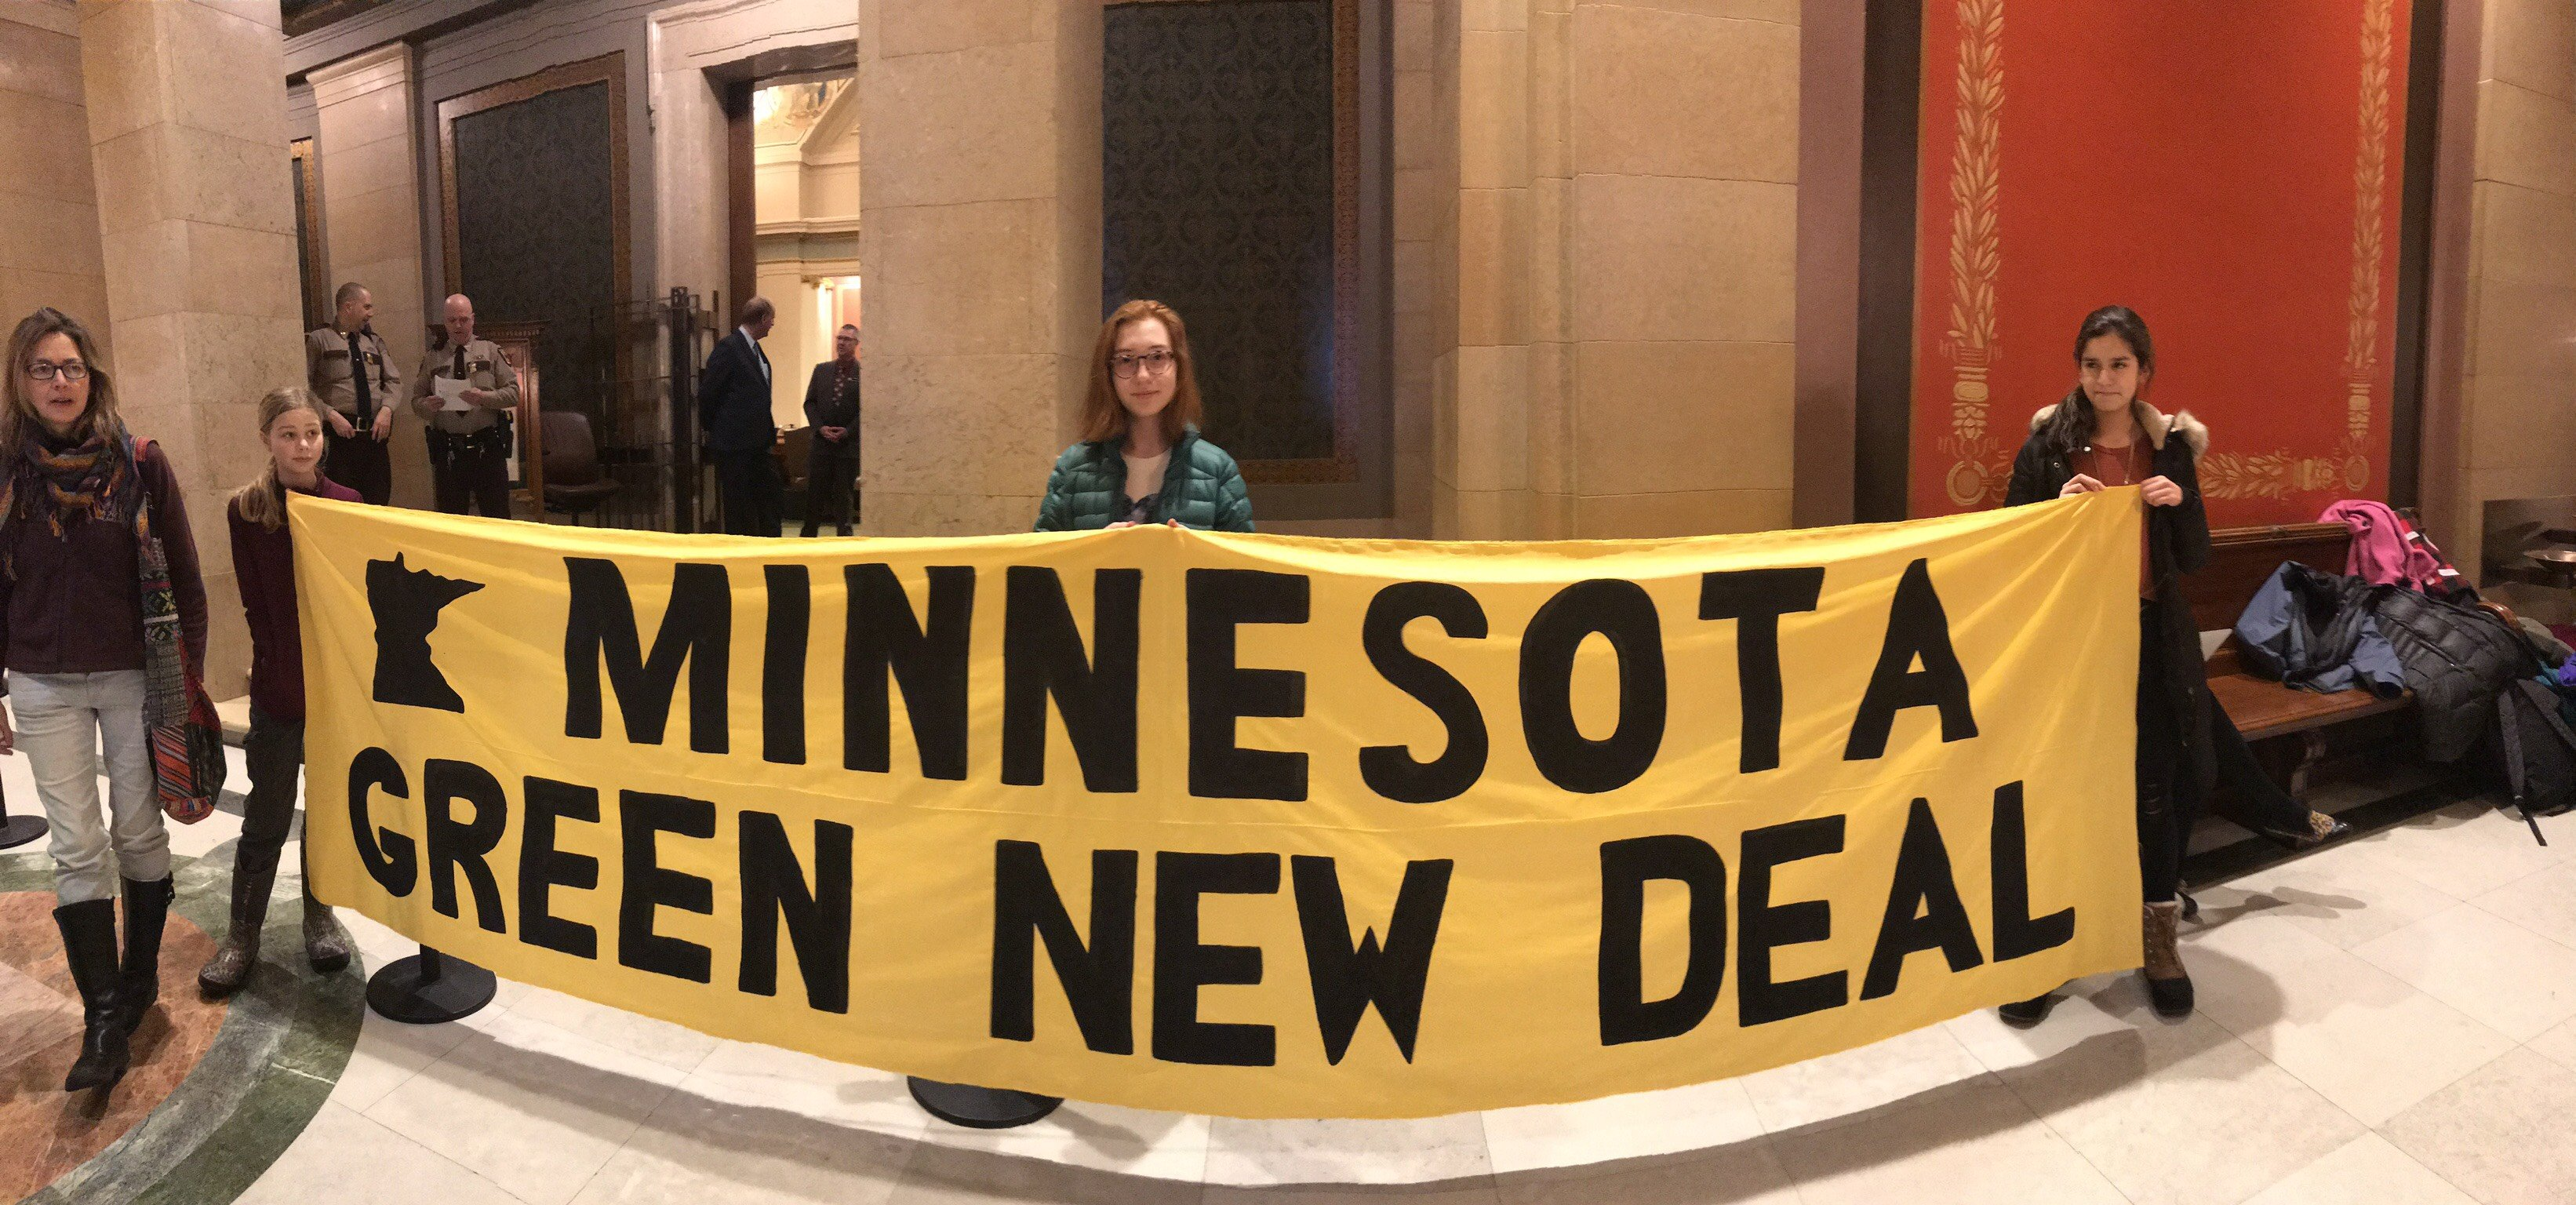 new product online retailer high quality Minnesota Can't Wait Demand Green New Deal - Mpls.St.Paul ...